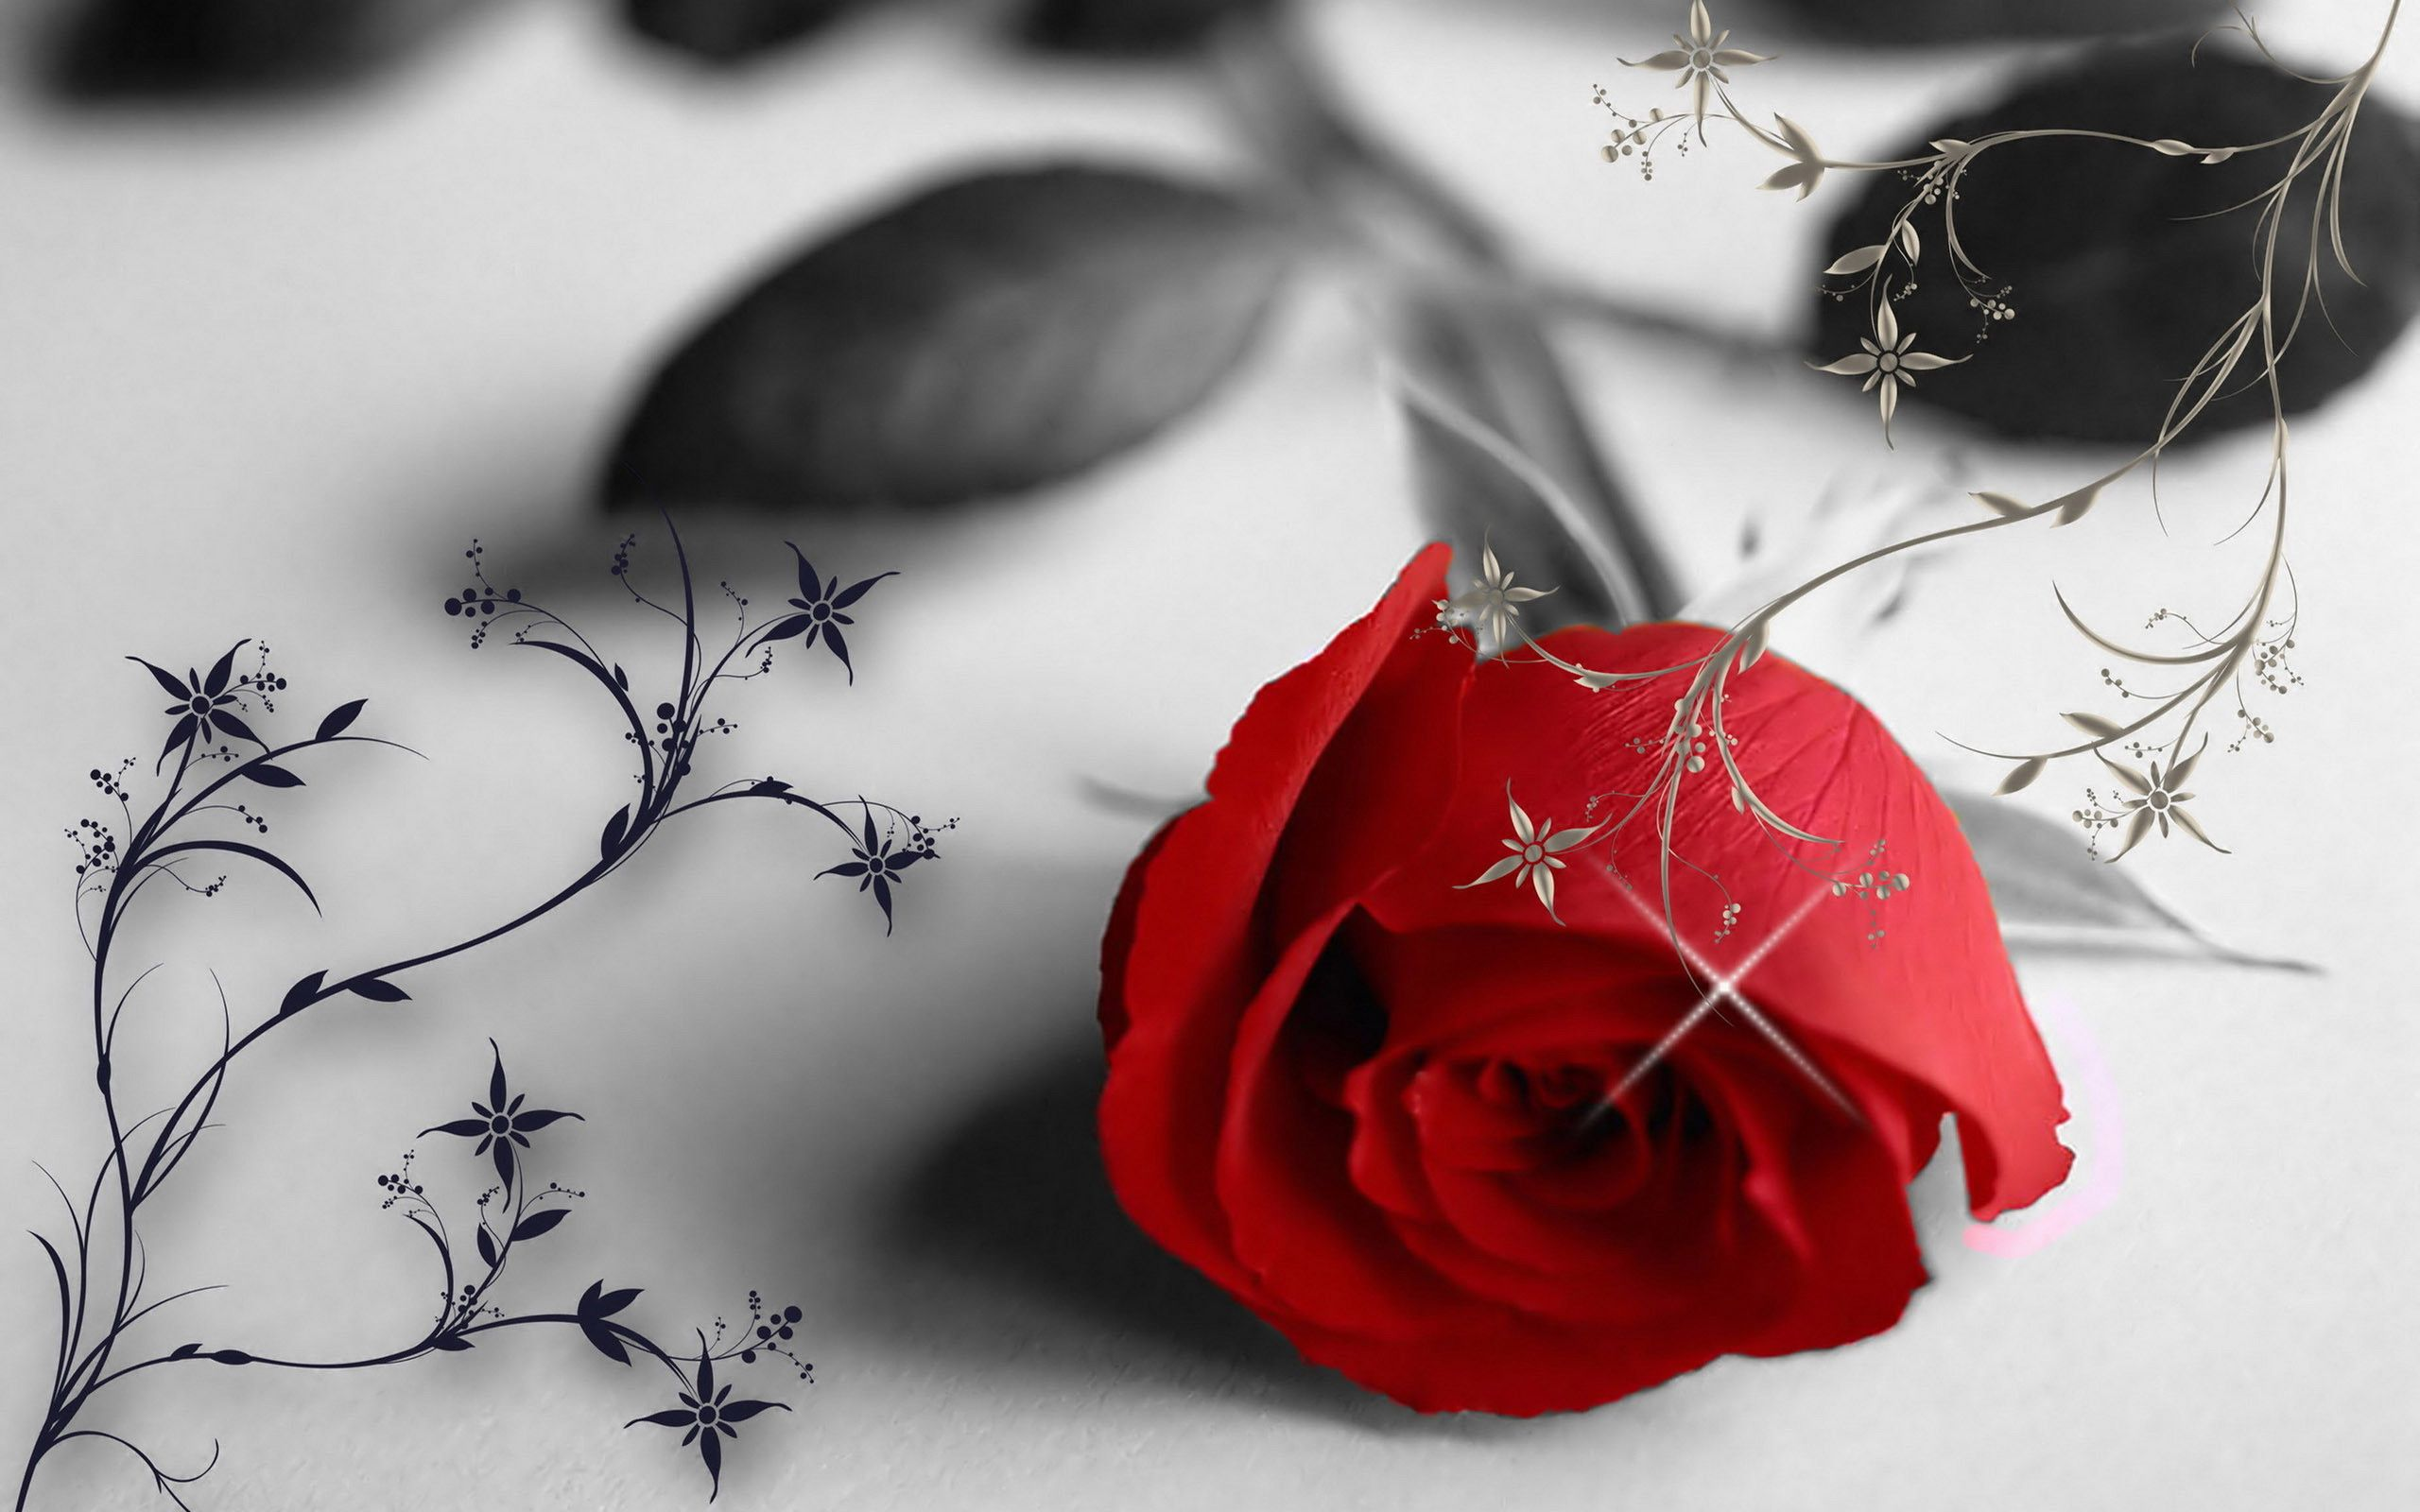 red rose in a black and white wallpaper - love moments